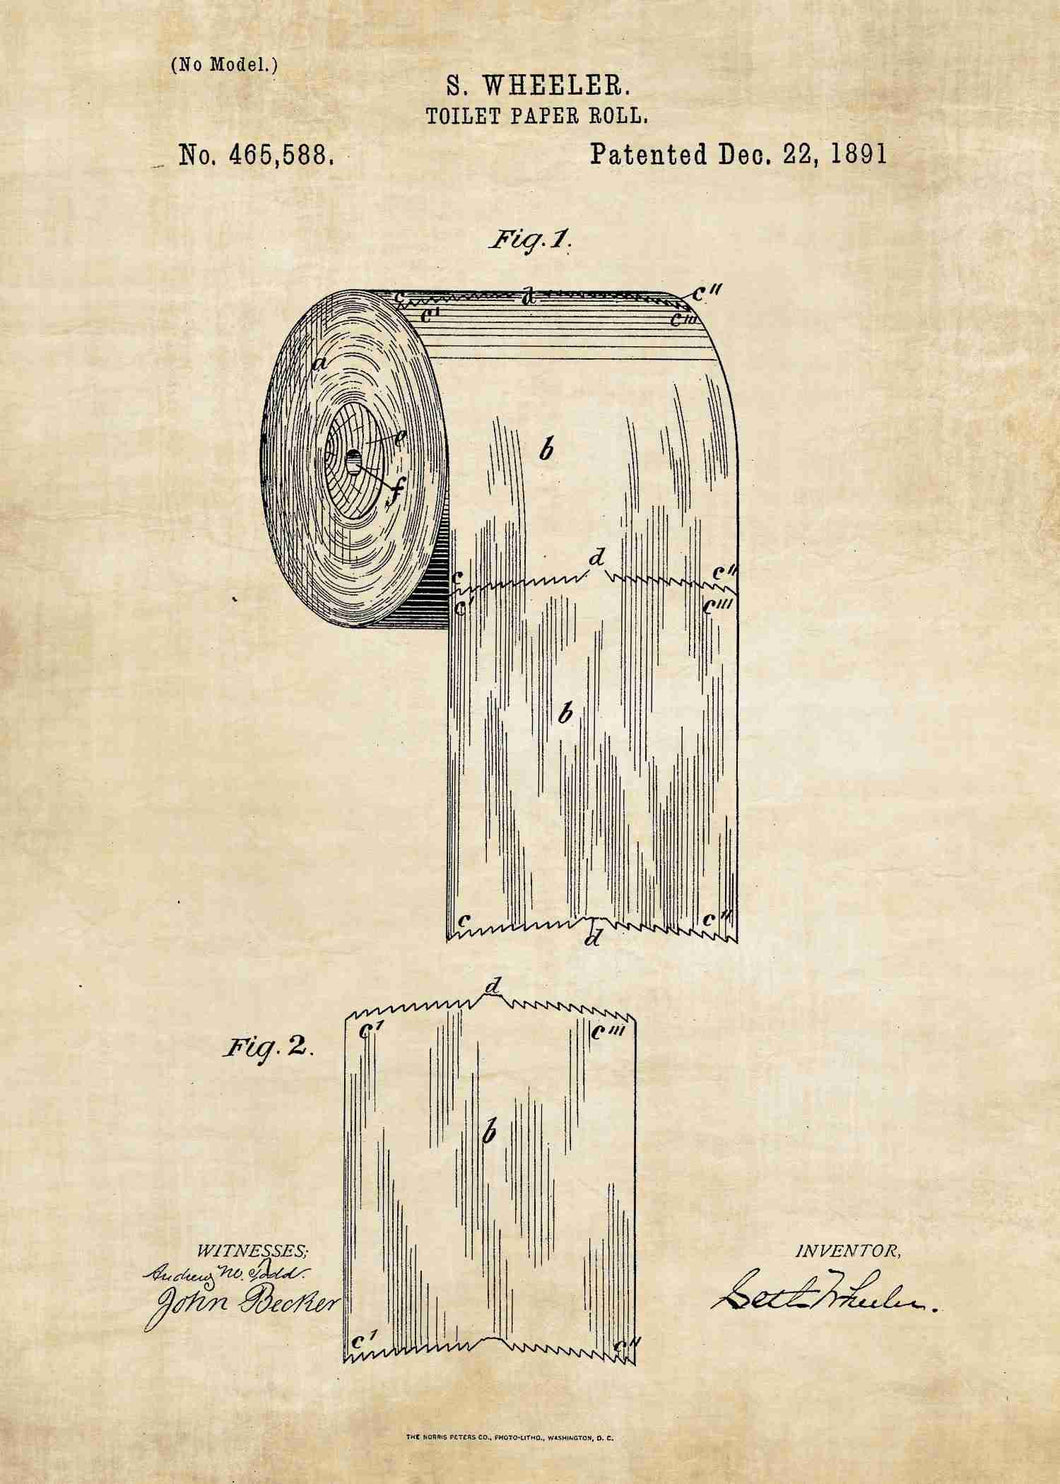 toilet paper patent print, bathroom poster shown in the style vintage